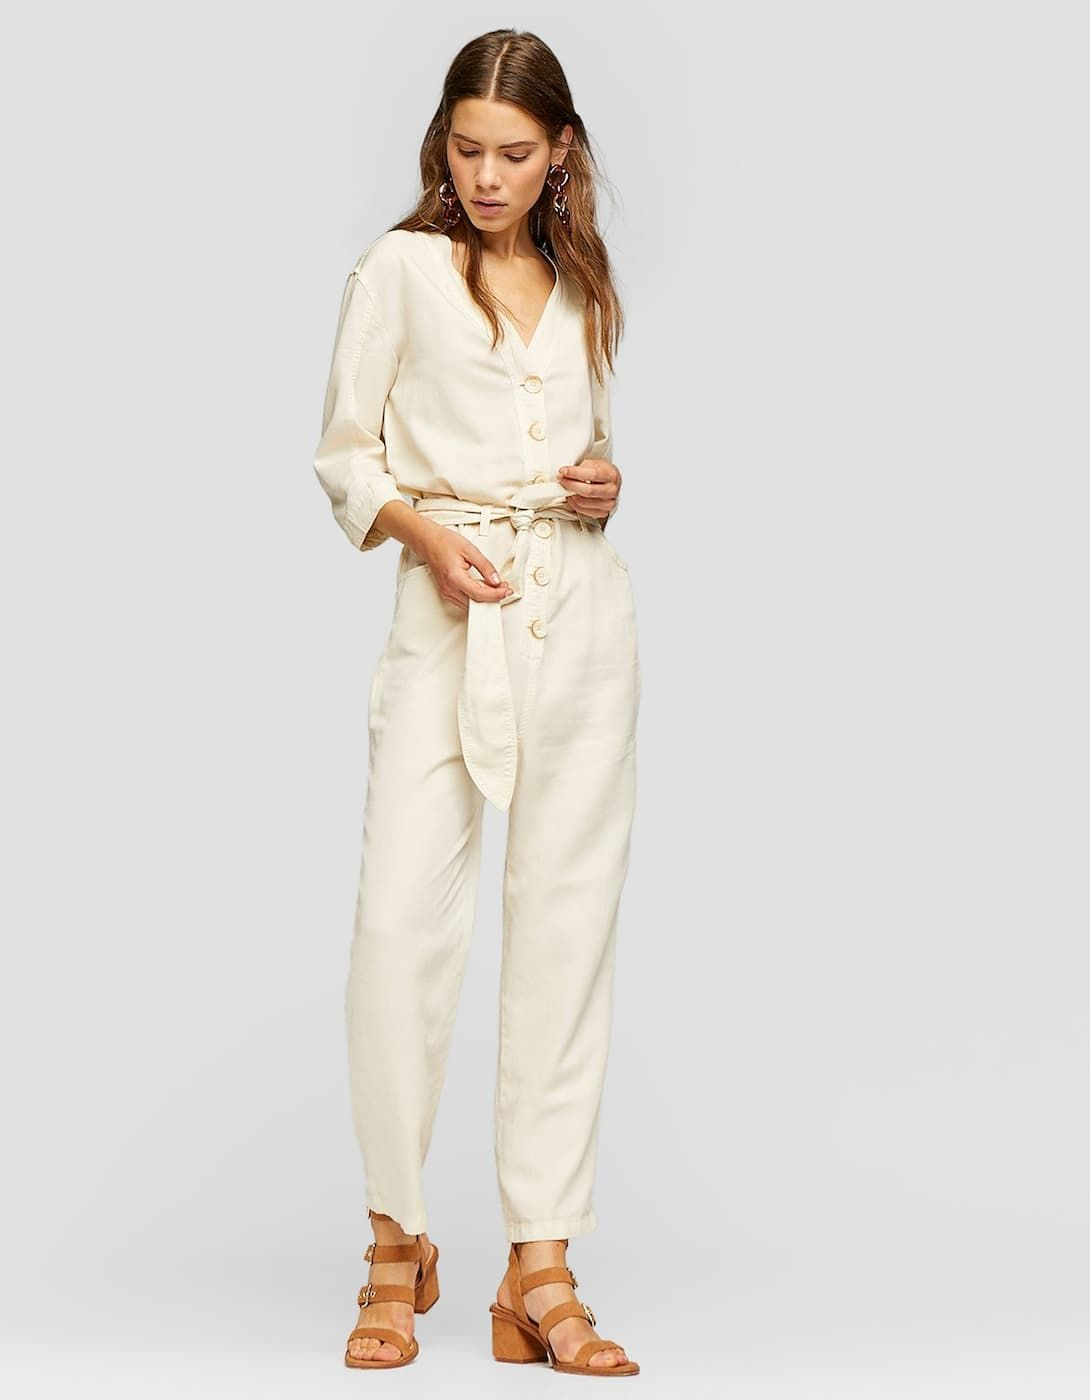 7a5bad1ae4 Utility jumpsuit with buttons - JUST IN